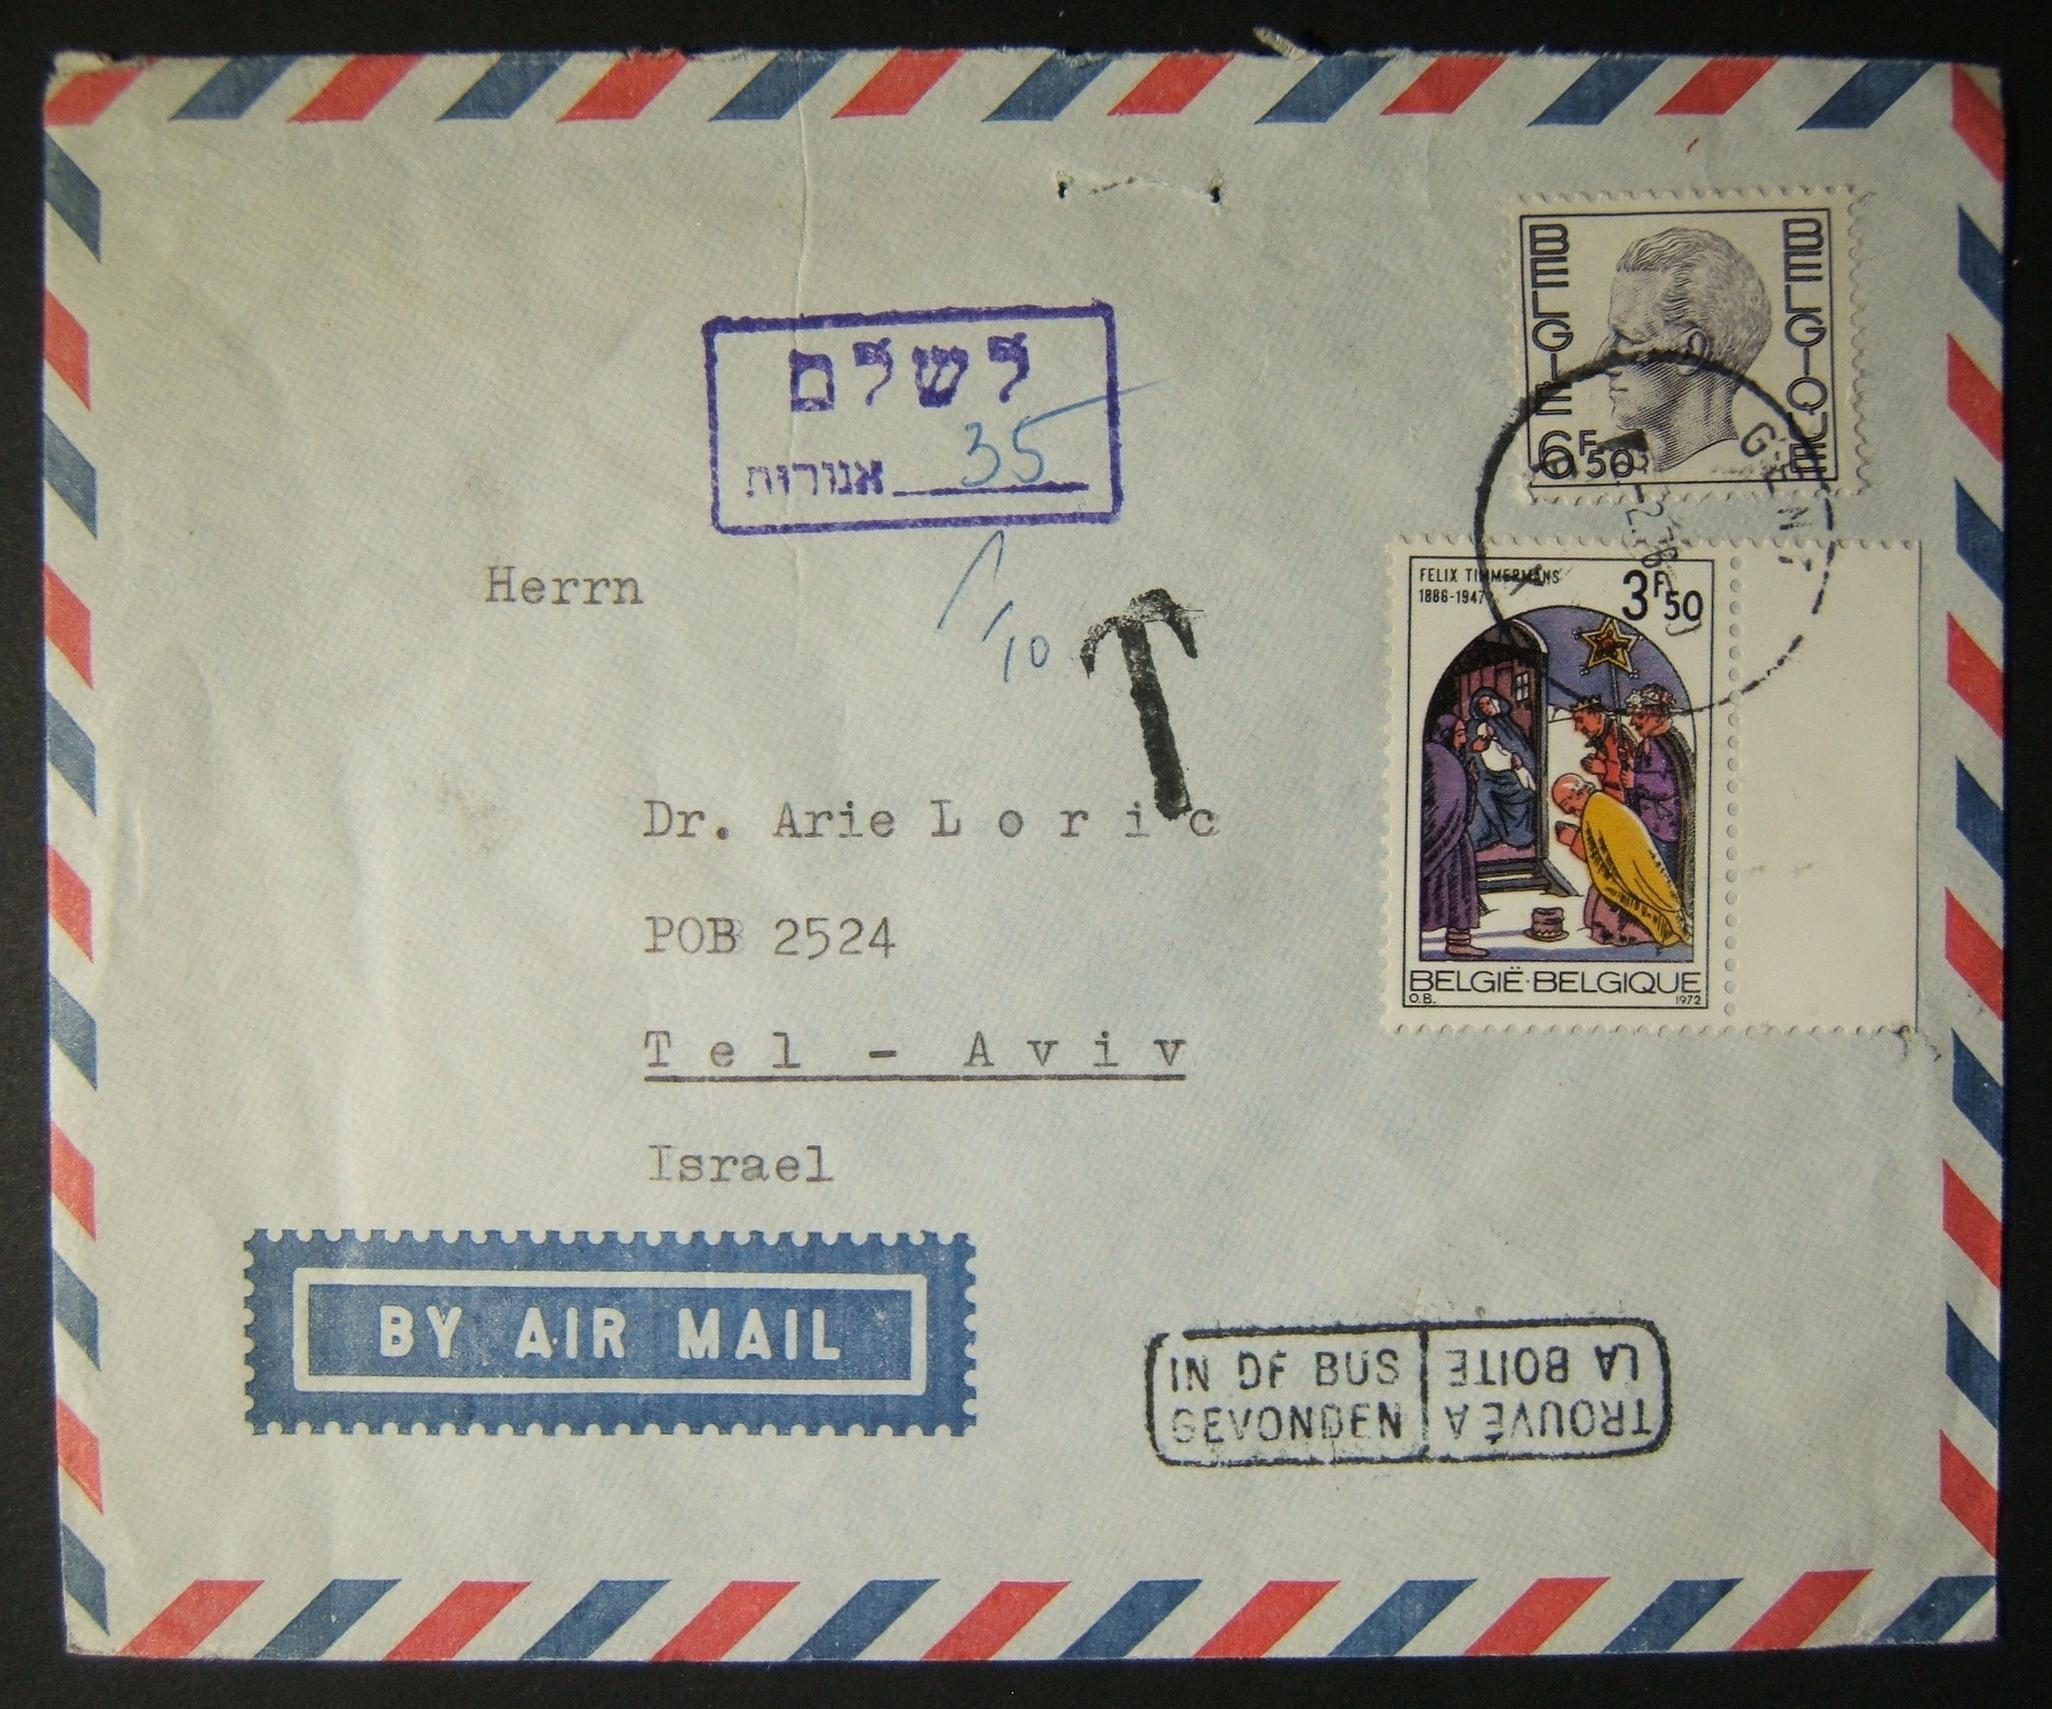 1976 incoming Belgian taxed mail: 2-2-1976 airmail commercial cover ex GENT to TLV underfranked at 10F and posted late, marked by bilingual